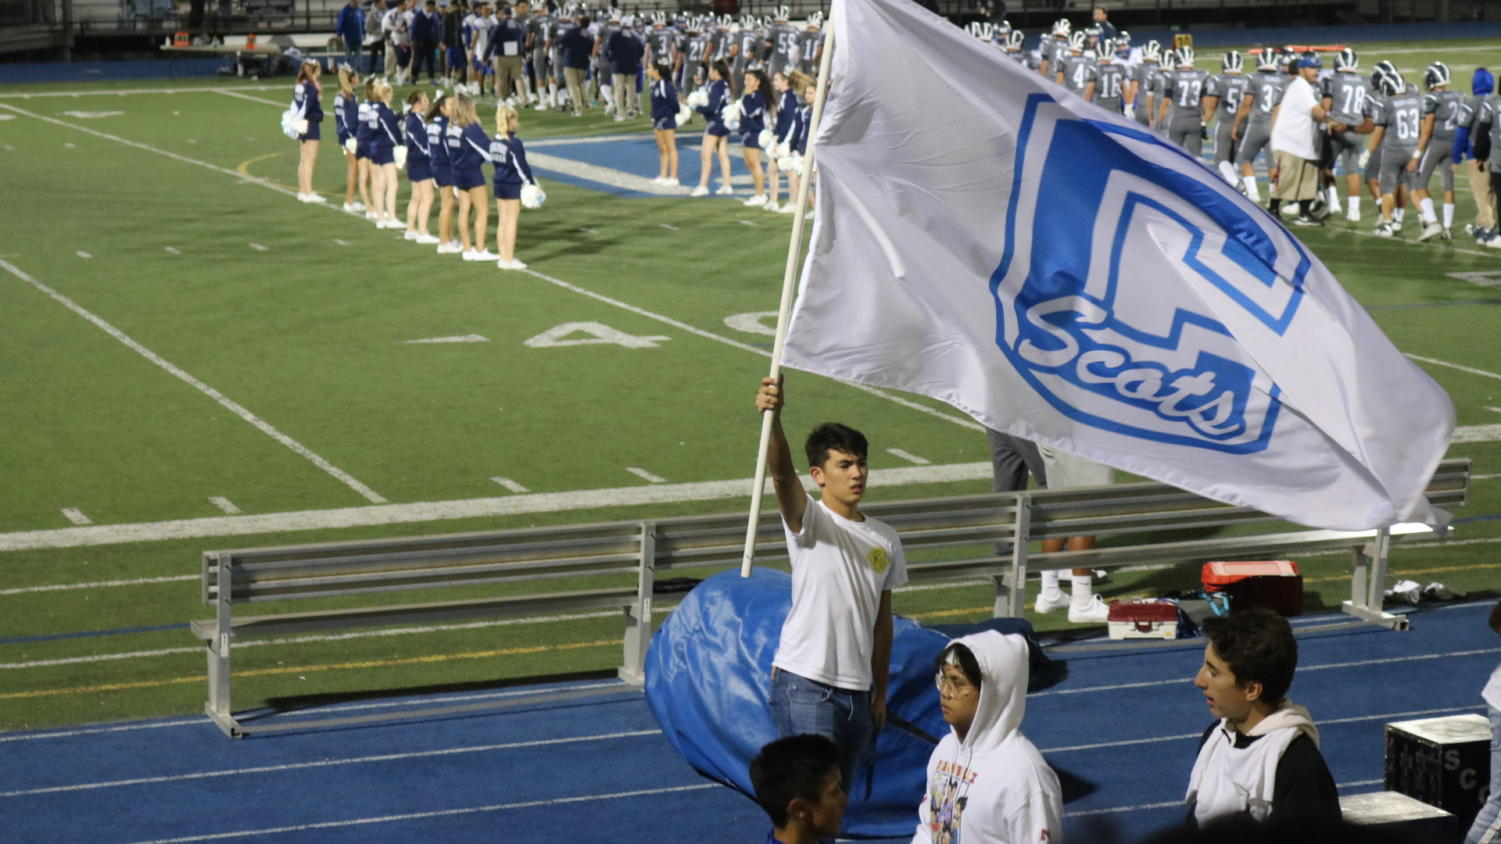 ASB member Nate Rutter waves the Carlmont flag for the crowd as the cheer and football teams meet on the field.